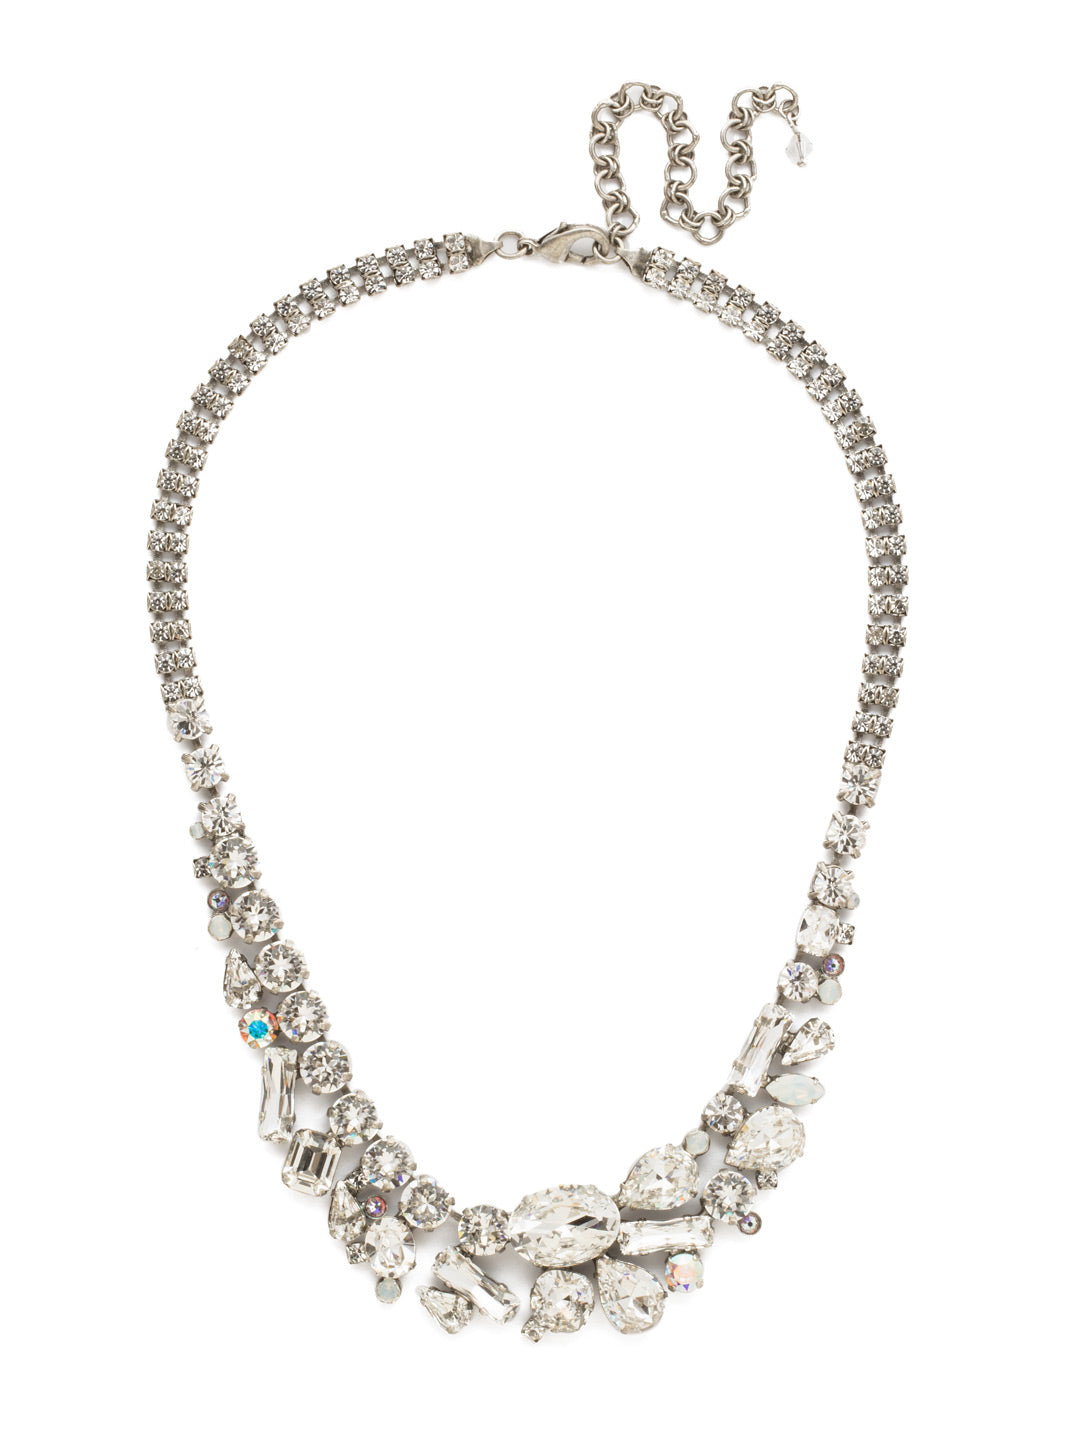 Muscari Statement Necklace - NDM52ASWBR